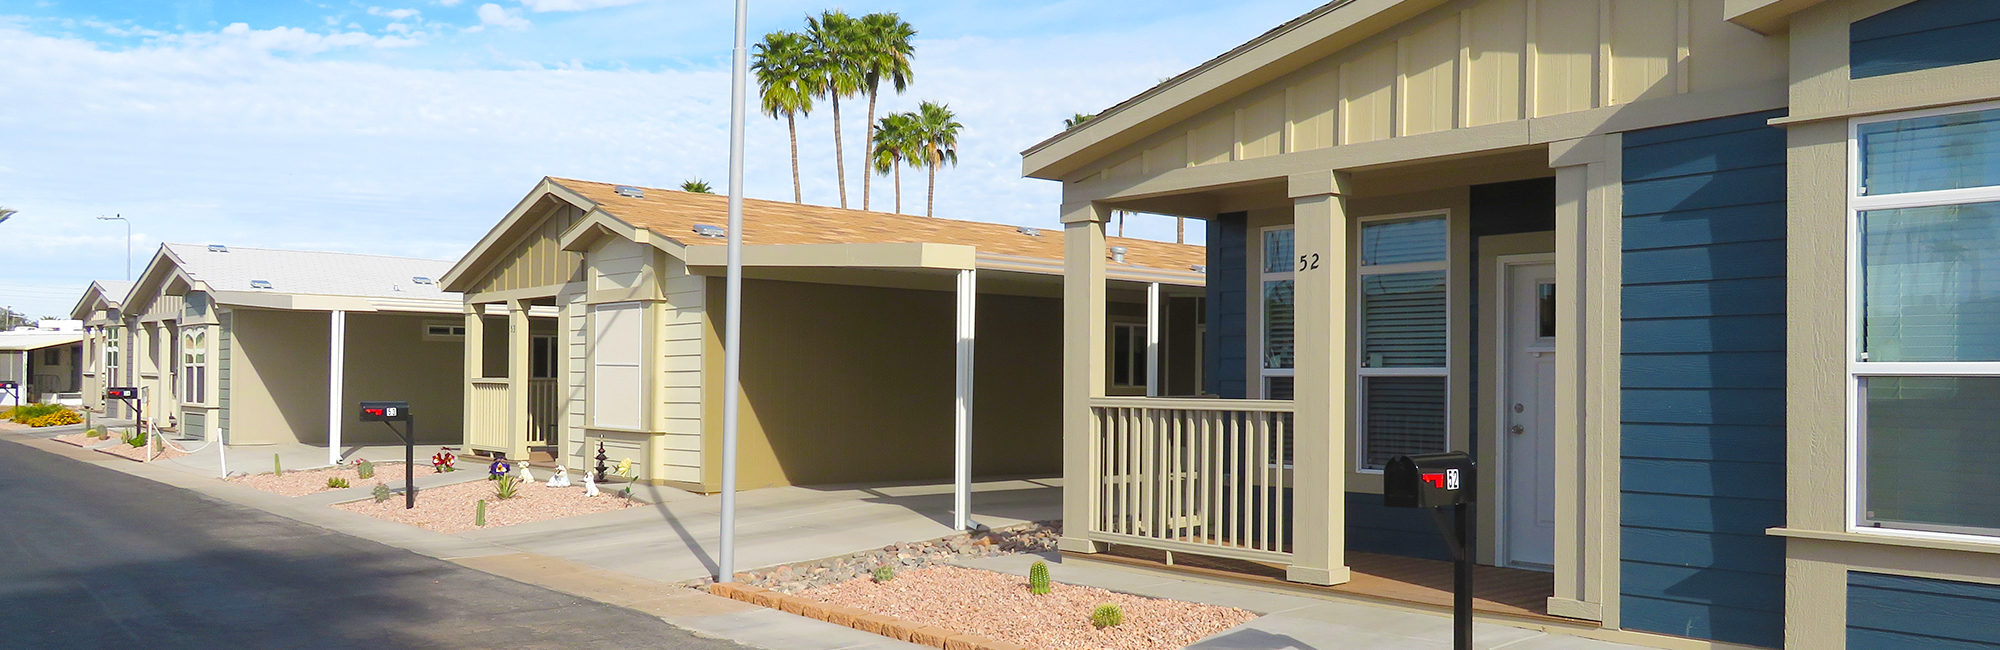 Mesa Arizona Manufactured Housing